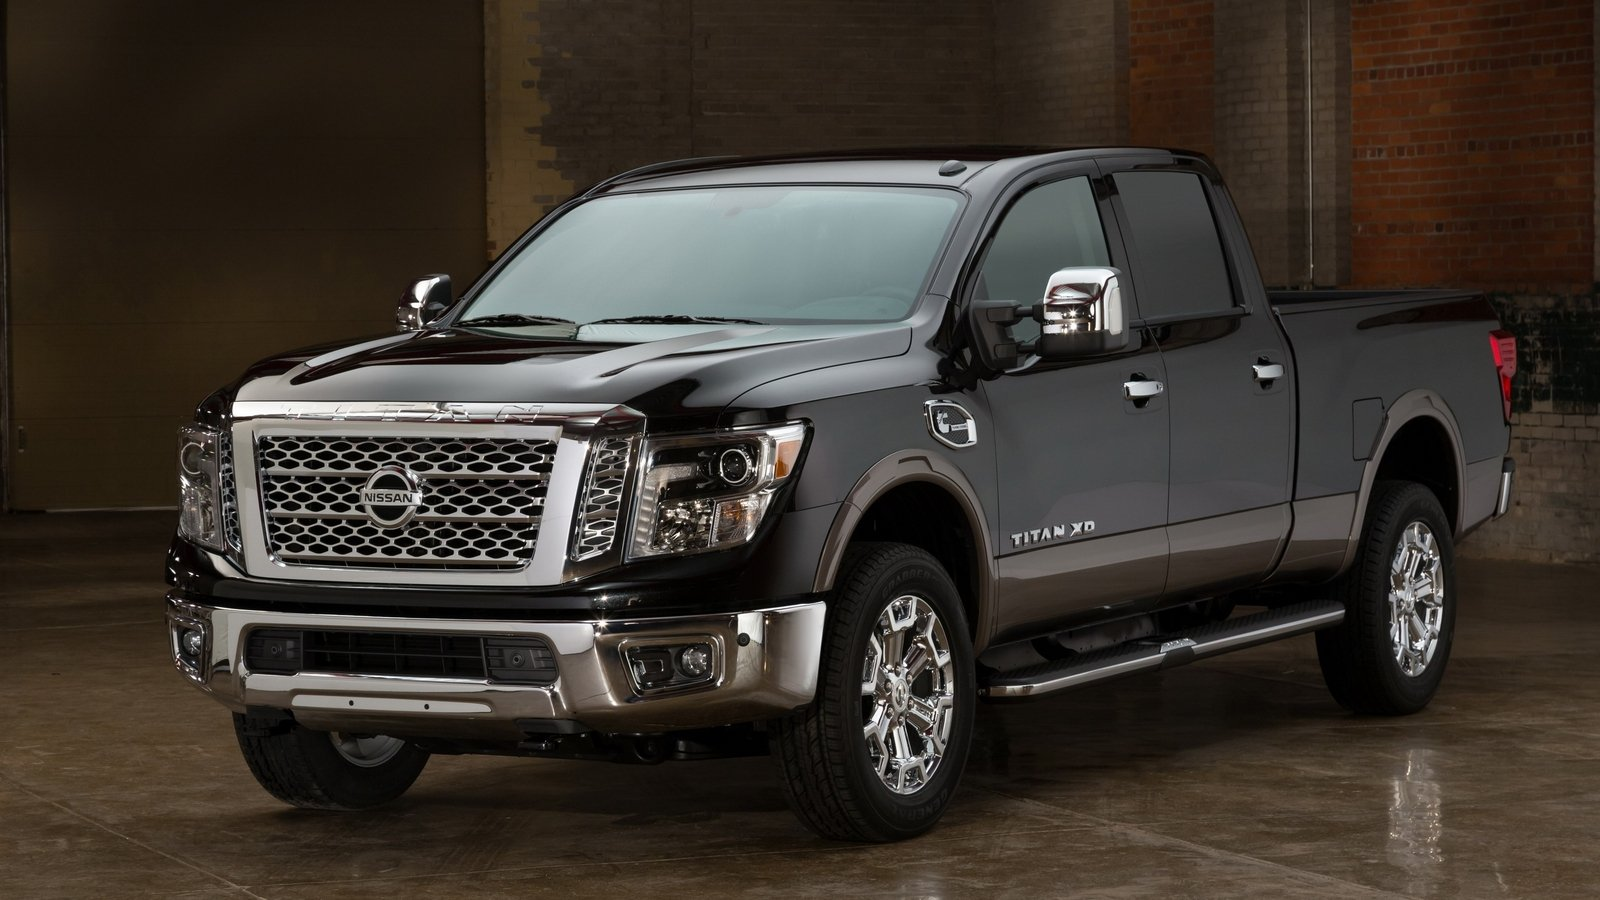 2016 nissan titan xd picture 610142 truck review top speed. Black Bedroom Furniture Sets. Home Design Ideas